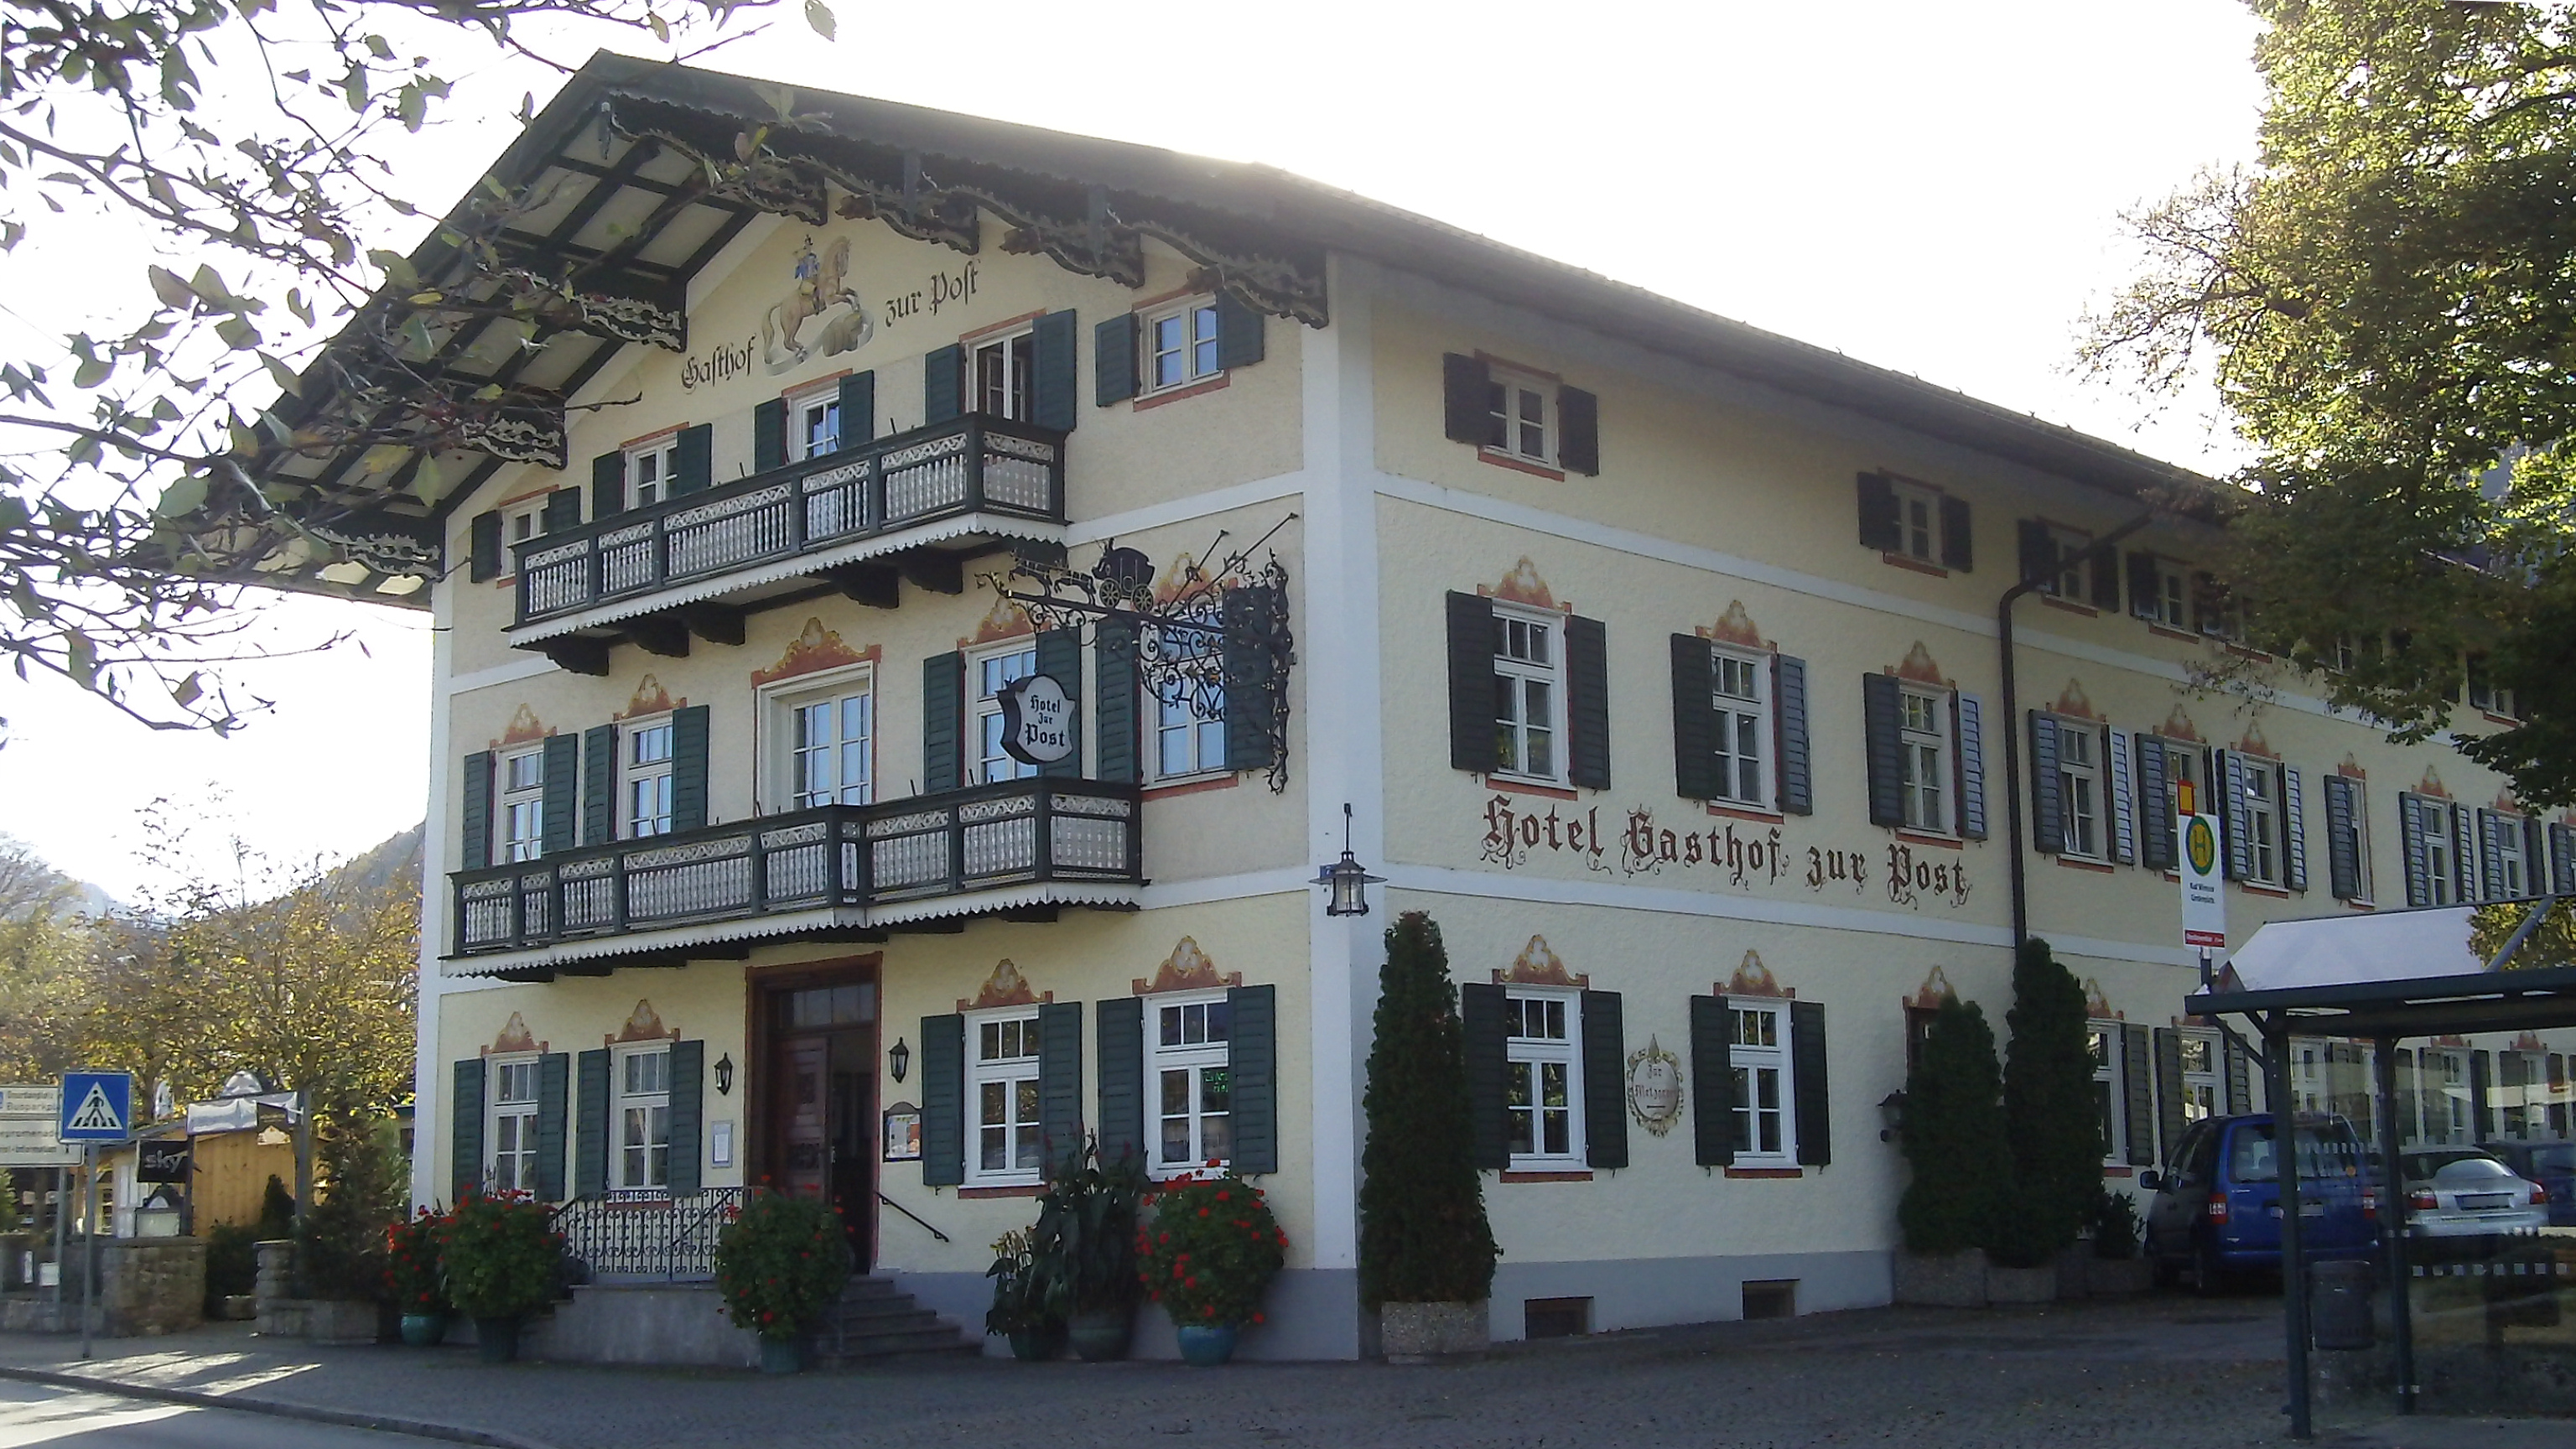 Hotel Gasthof Zur Post Bad Wiessee